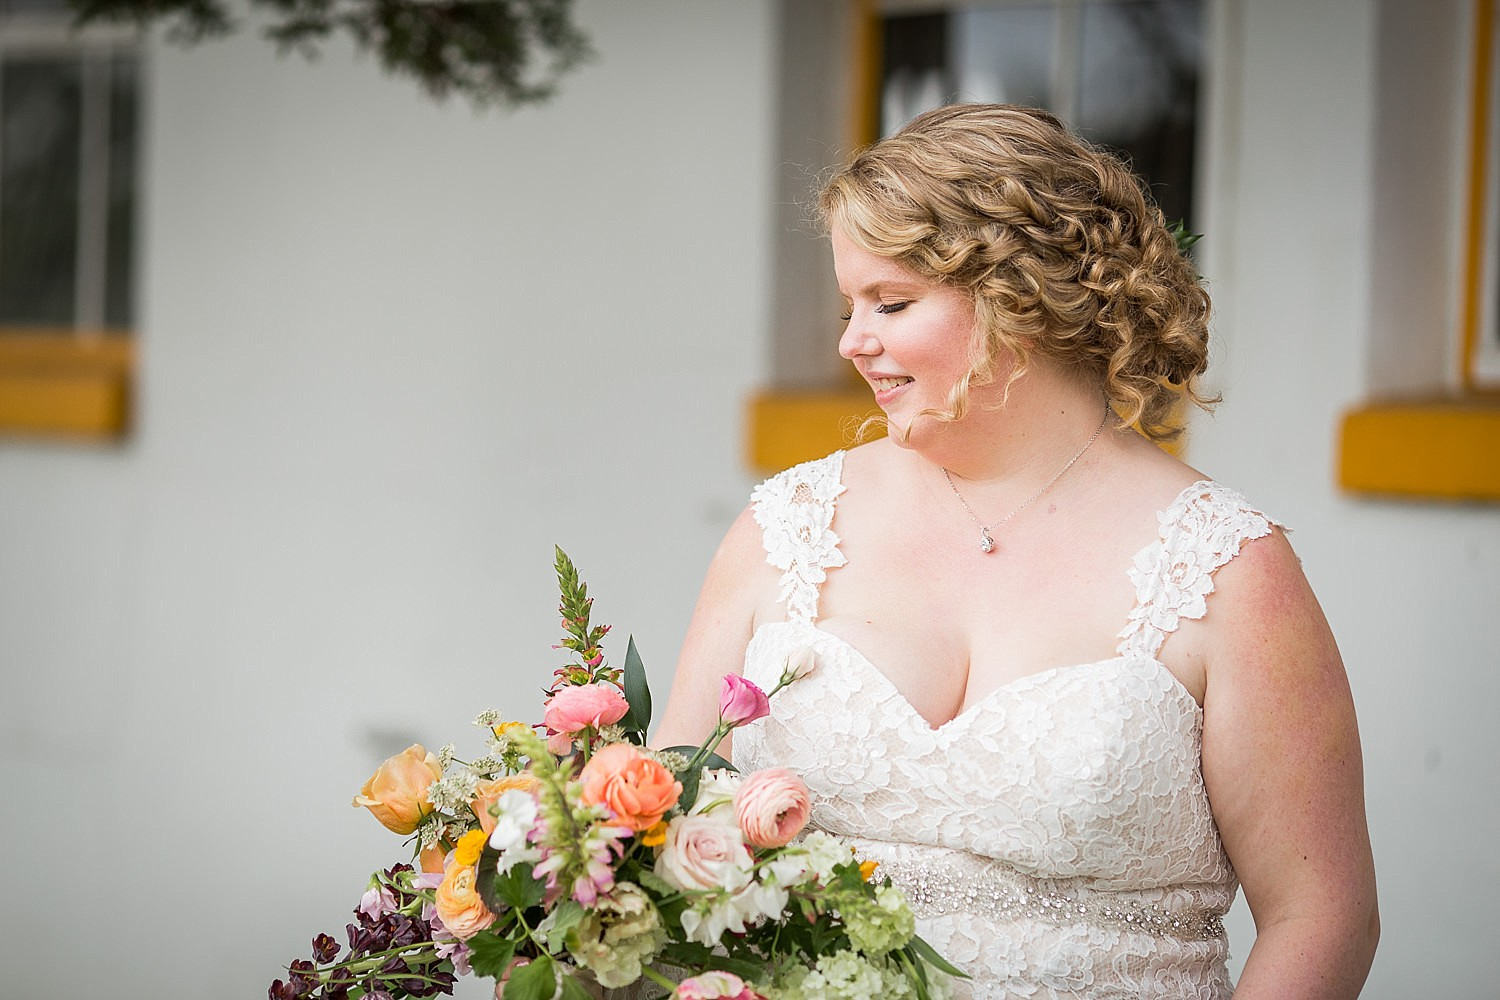 Photo of a bride with blonde hair and ringlets blowing in the wind as she looks down at her bouquet of flowers.